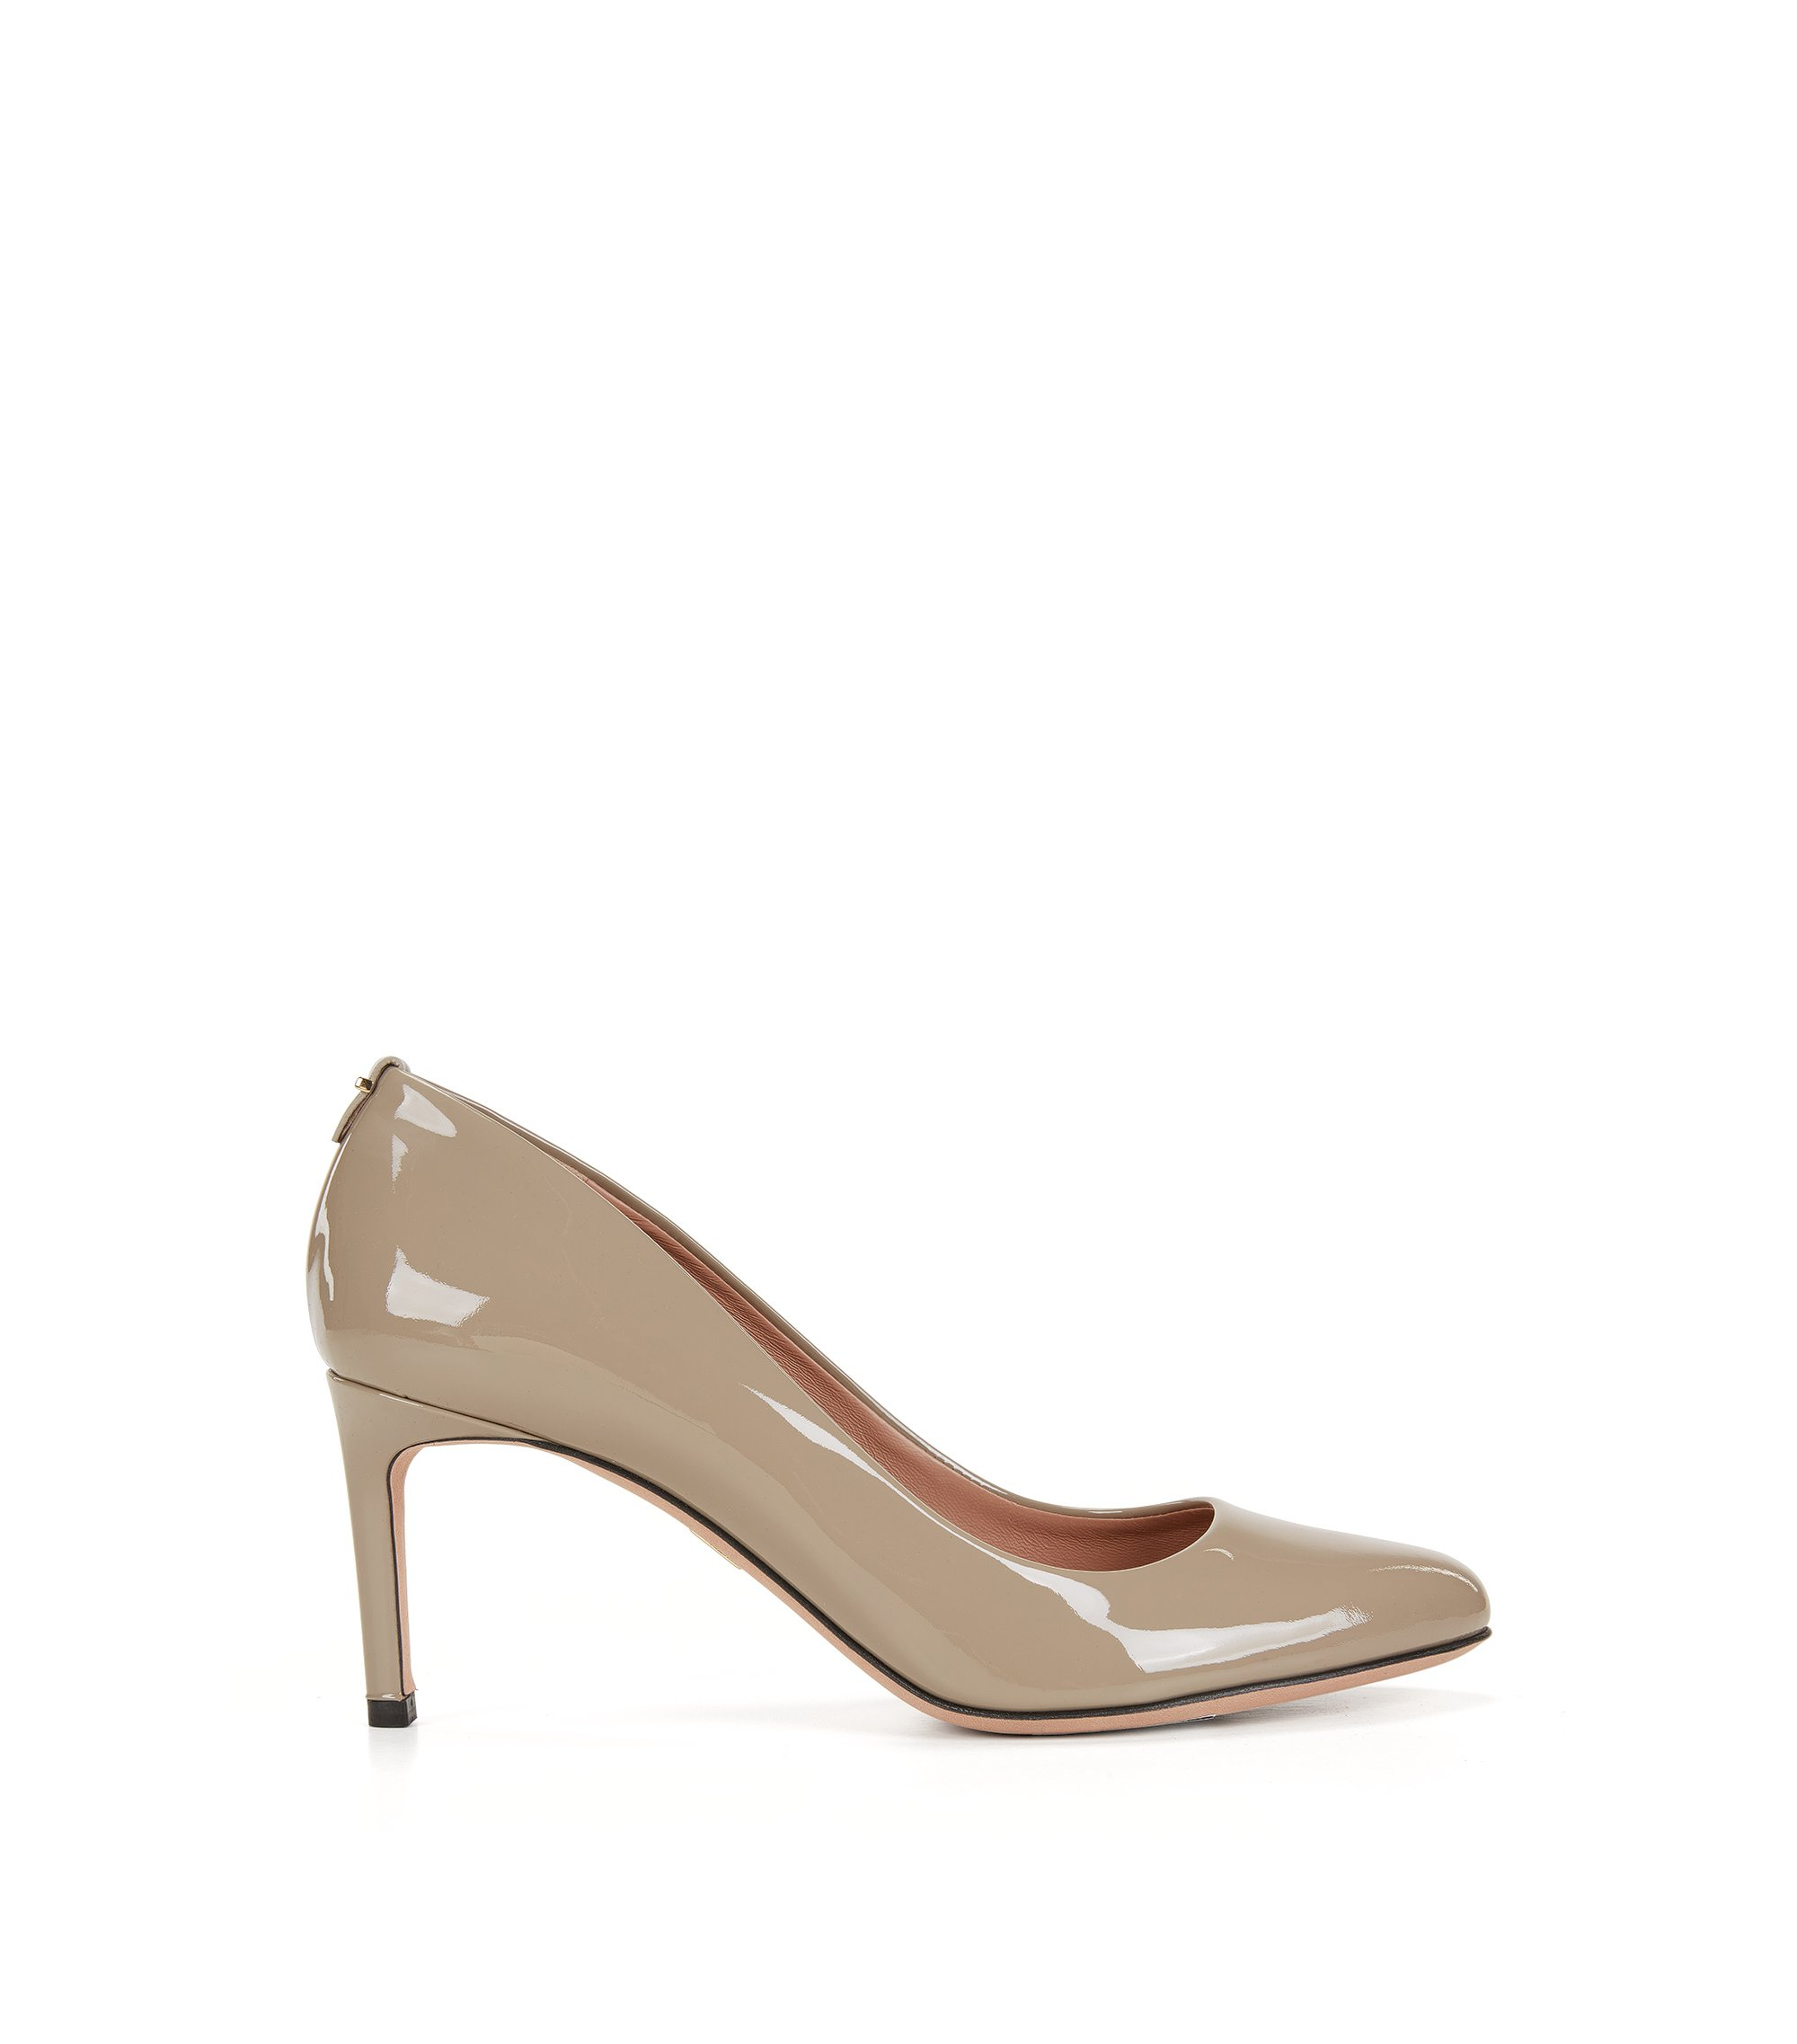 BOSS Luxury Staple pumps in Italian patent leather , Beige